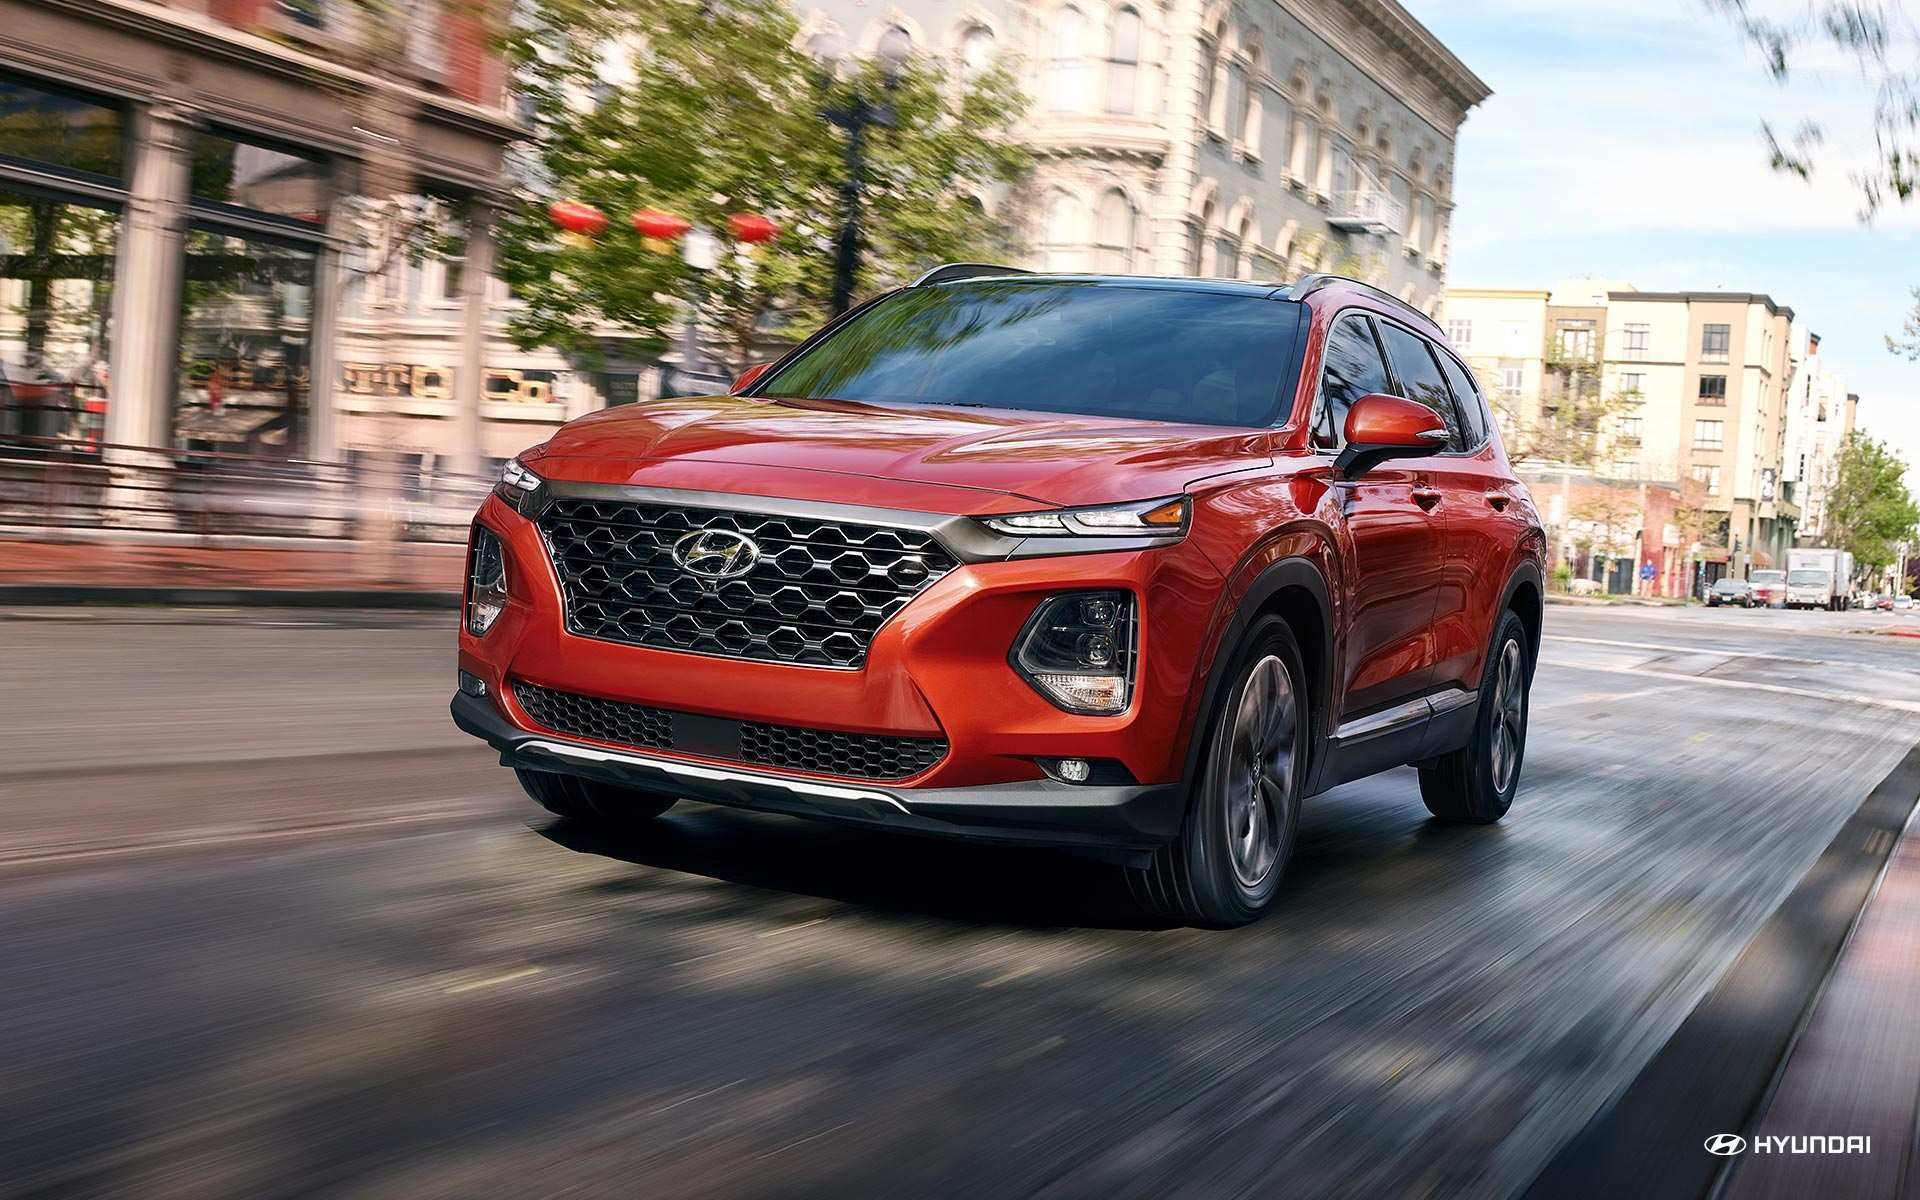 82 A 2019 Hyundai Santa Fe Redesign And Concept